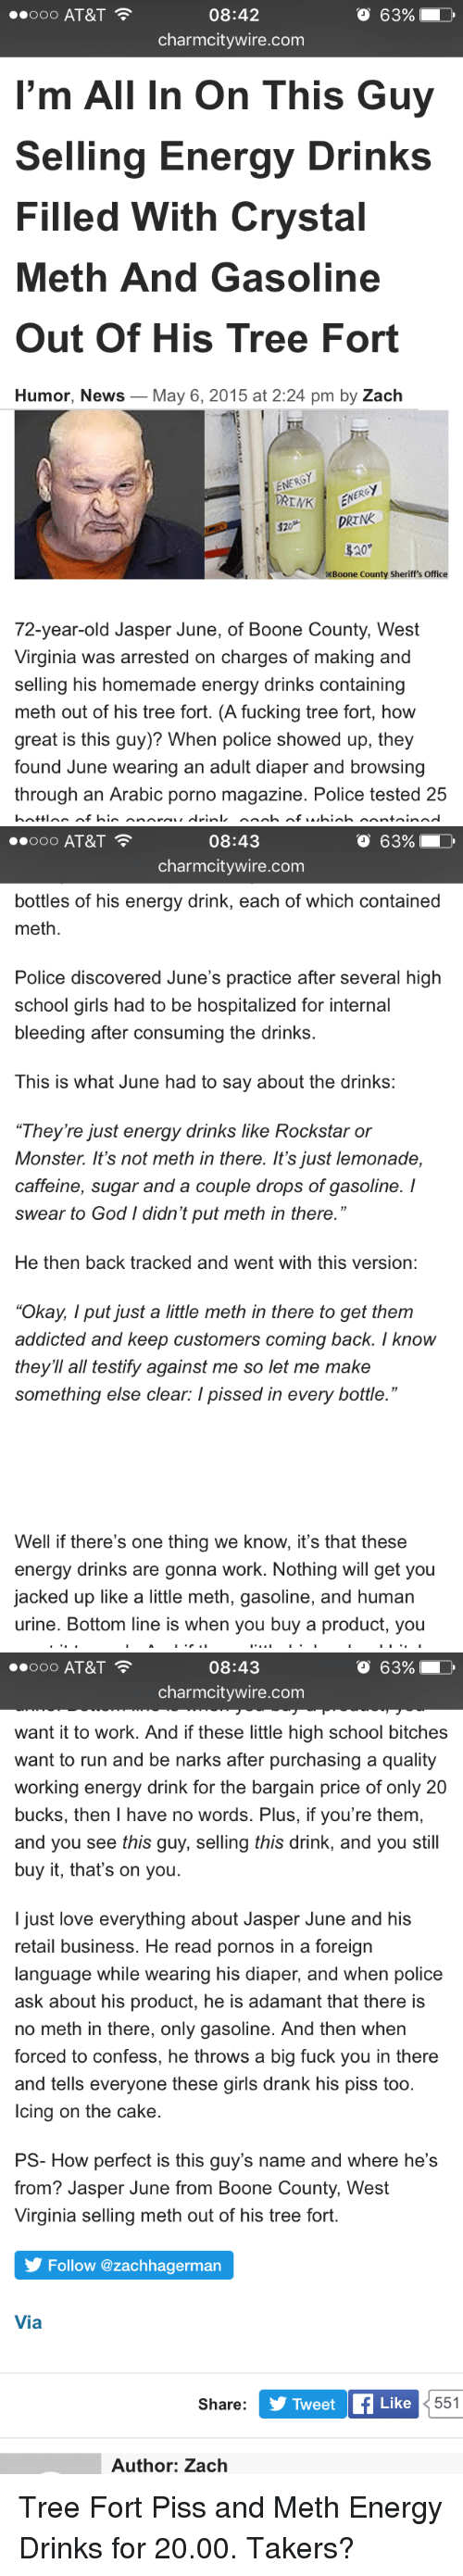 "Energy, Fuck You, and Fucking: O 63%  08:42  charmcitywire.com  I'm All In On This Guy  Selling Energy Drinks  Filled With Crystal  Meth And Gasoline  Out Of His Tree Fort  Humor, News_May 6, 2015 at 2:24 pm by Zach  ENERO  DRINK  NERGY  Boone County Sheriff's Office  72-year-old Jasper June, of Boone County, West  Virginia was arrested on charges of making and  selling his homemade energy drinks containing  meth out of his tree fort. (A fucking tree fort, how  great is this guy)? When police showed up, they  found June wearing an adult diaper and browsing  through an Arabic porno magazine. Police tested 25   00 AT&T  08:43  o 63%!  charmcitywire.com  bottles of his energy drink, each of which contained  meth.  Police discovered June's practice after several high  school girls had to be hospitalized for internal  bleeding after consuming the drinks.  This is what June had to say about the drinks:  They're just energy drinks like Rockstar or  Monster. It's not meth in there. It's just lemonade,  caffeine, sugar and a couple drops of gasoline. I  swear to God I didn't put meth in there.""  He then back tracked and went with this version:  ""Okay,Iput just a little meth in there to get them  addicted and keep customers coming back. I know  they'll all testify against me so let me make  something else clear: I pissed in every bottle.""  Well if there's one thing we know, it's that these  energy drinks are gonna work. Nothing will get you  jacked up like a little meth, gasoline, and human  urine. Bottom line is when you buy a product, you   08:43  O 63%  charmcitywire.com  want it to work. And if these little high school bitches  want to run and be narks after purchasing a quality  working energy drink for the bargain price of only 20  bucks, then I have no words. Plus, if you're them,  and you see this guy, selling this drink, and you still  buy it, that's on you.  I just love everything about Jasper June and his  retail business. He read pornos in a foreign  language while wearing his diaper, and when police  ask about his product, he is adamant that there Is  no meth in there, only gasoline. And then whern  forced to confess, he throws a big fuck you in there  and tells everyone these girls drank his piss too  lcing on the cake.  PS- How perfect is this guy's name and where he's  from? Jasper June from Boone County, West  Virginia selling meth out of his tree fort  Follow @zachhagerman  Via  Share:  Tweet  Like  551  Author: Zach Tree Fort Piss and Meth Energy Drinks for 20.00. Takers?"